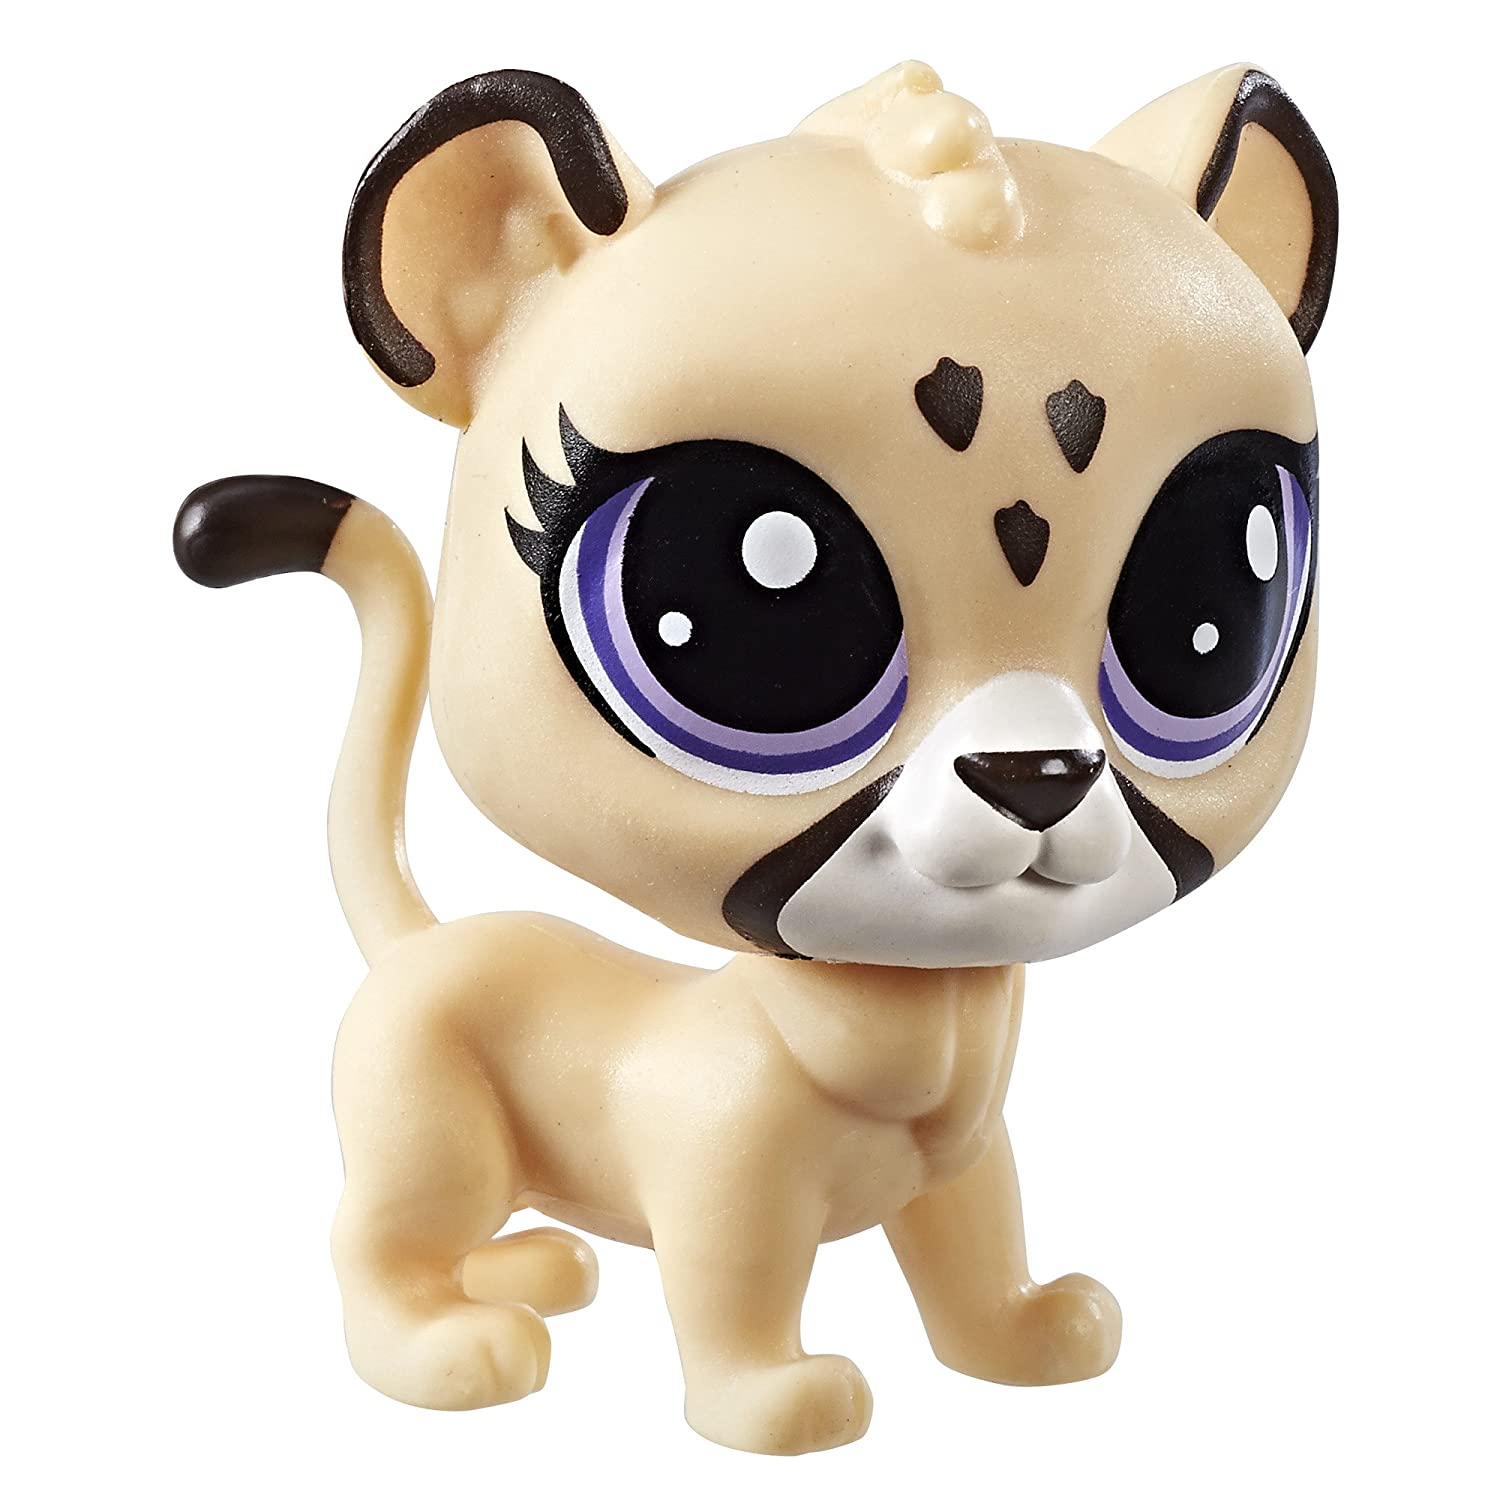 video for watch fun play making toys doh w youtube jaguar surprise animal kids colors